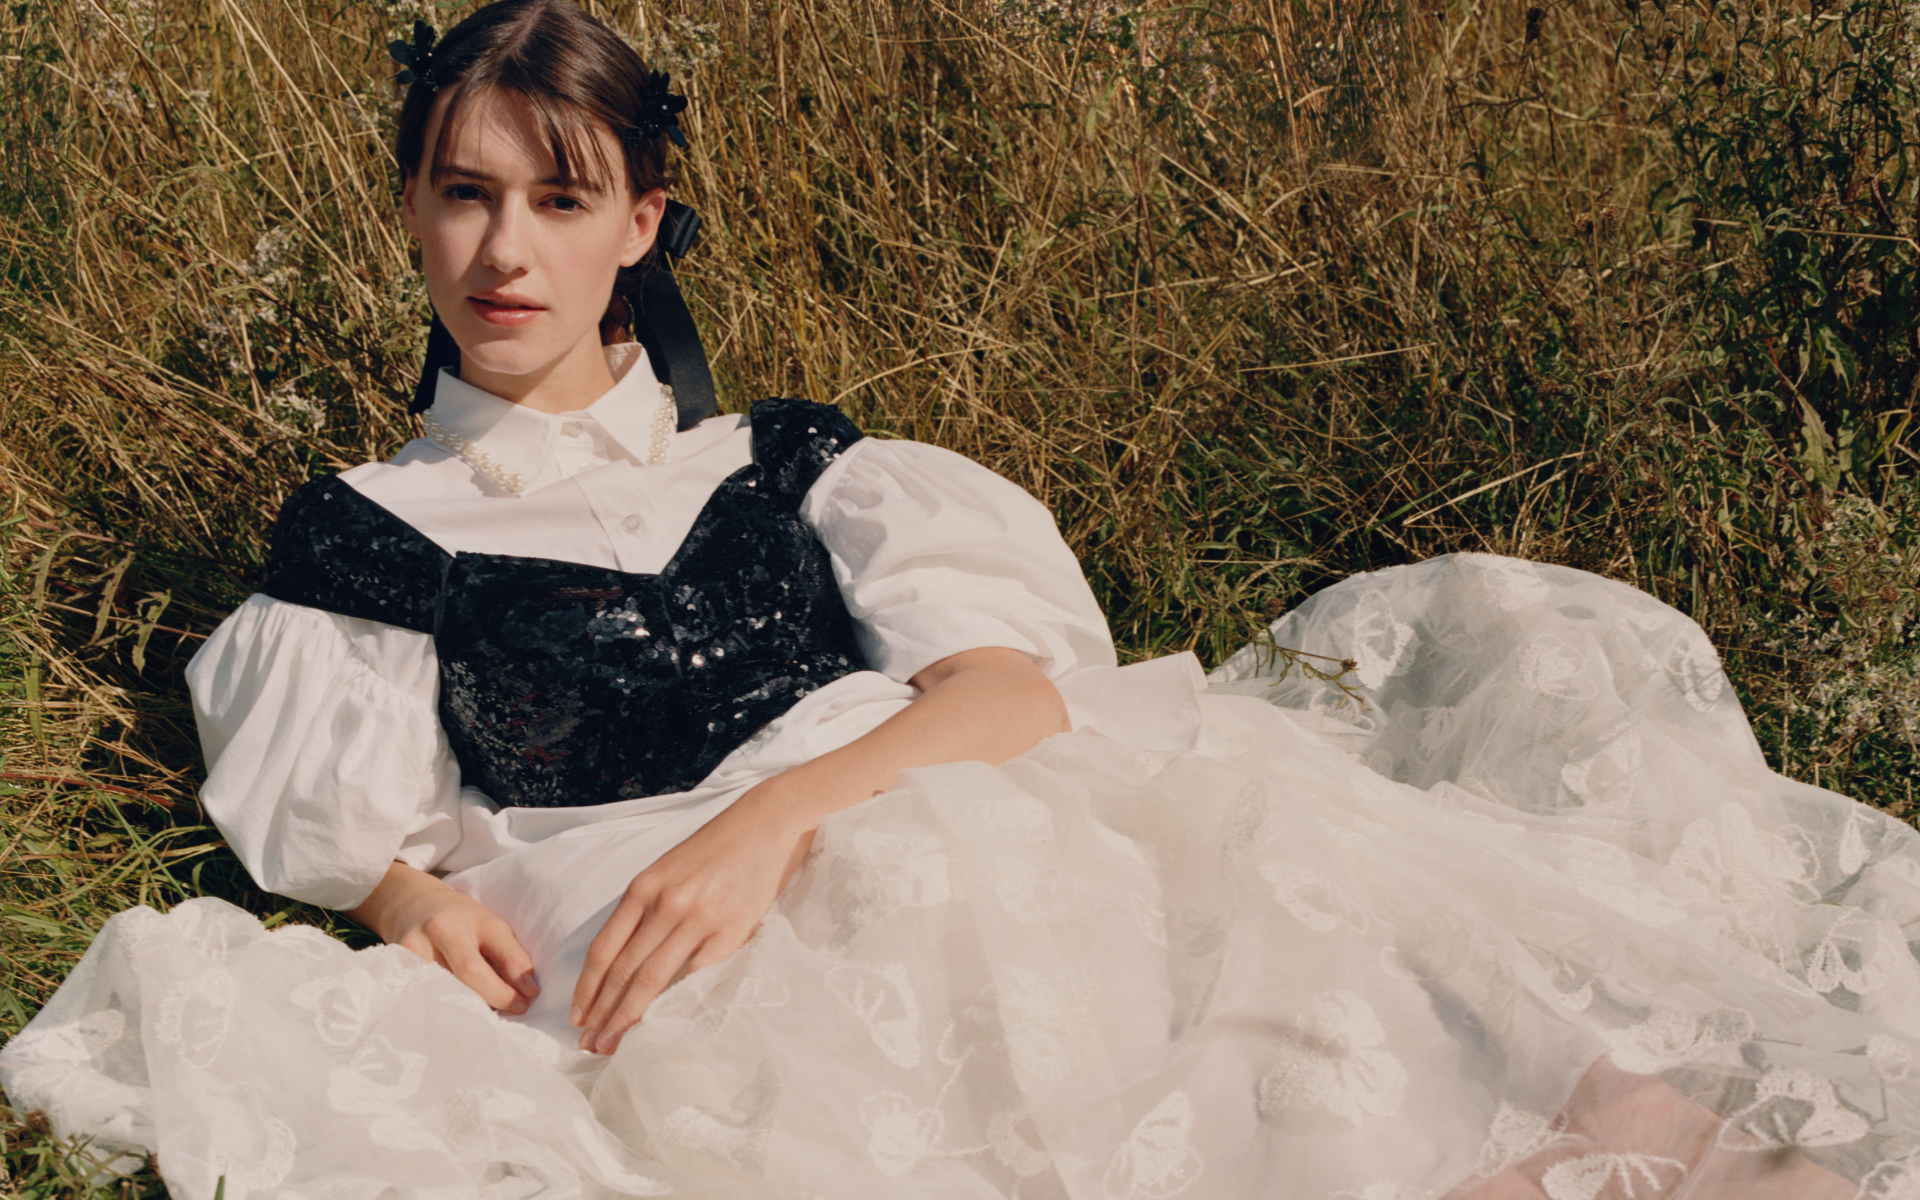 Daisy Edgar Jones, Critics Award-winning actress and breakout star from hit series, Normal People, wears the latest Simone Rocha x H&M collection